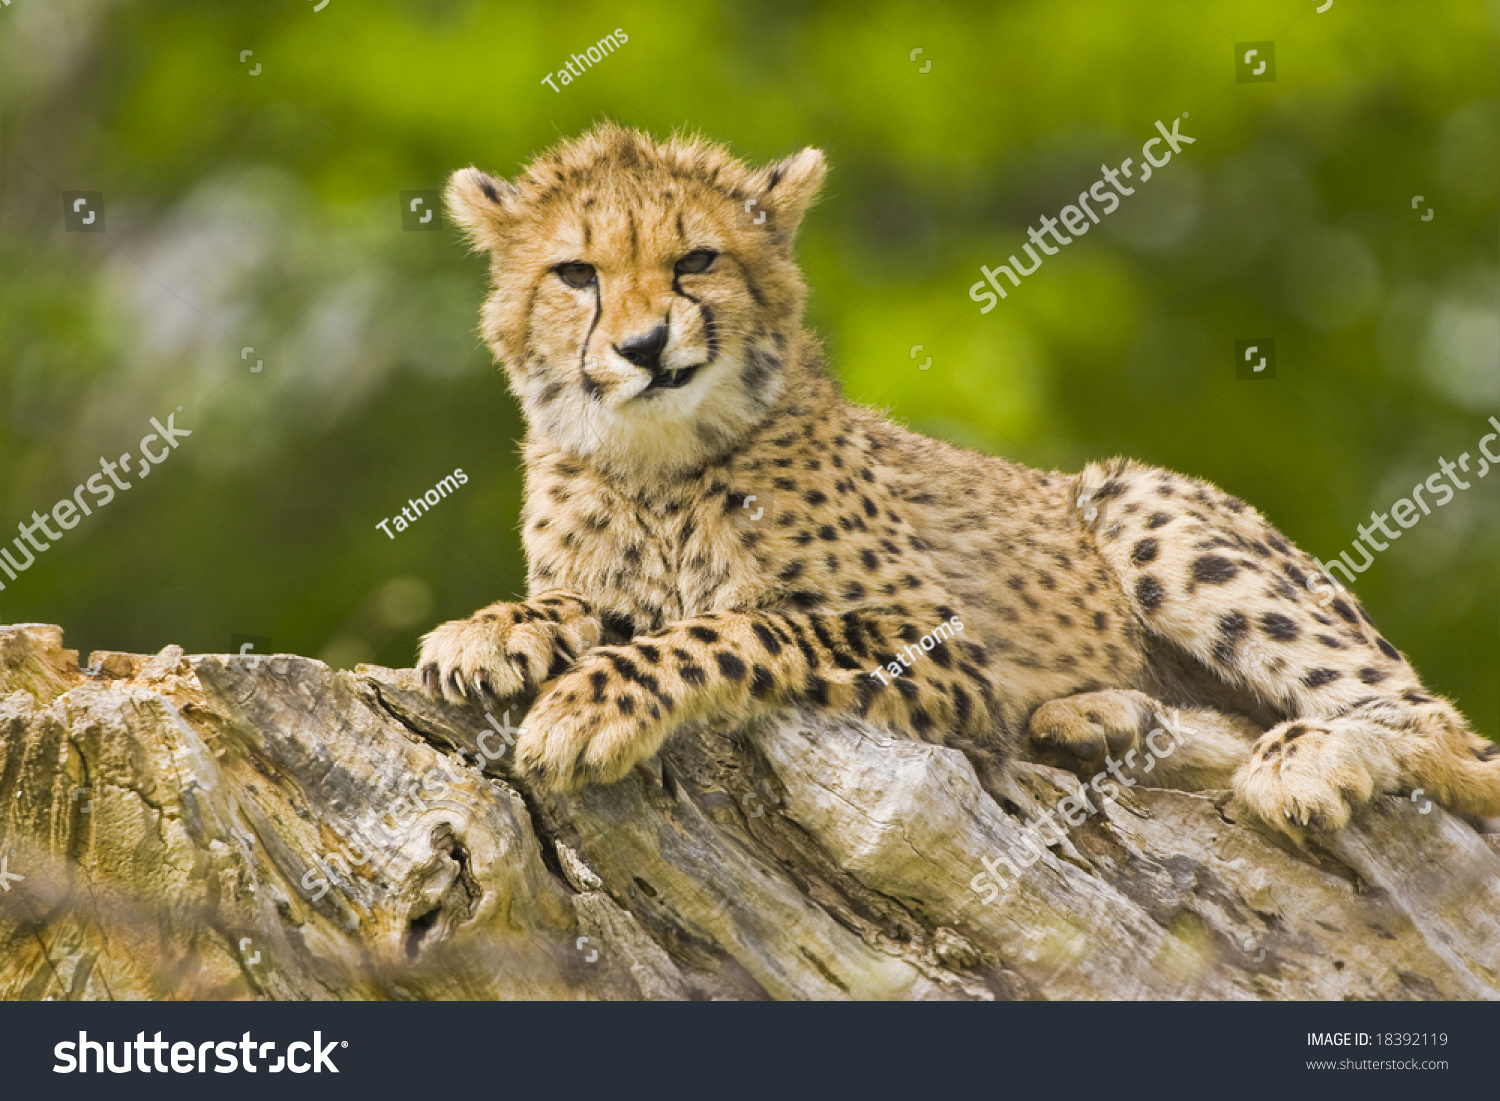 stock-photo-young-cheetah-making-faces-1